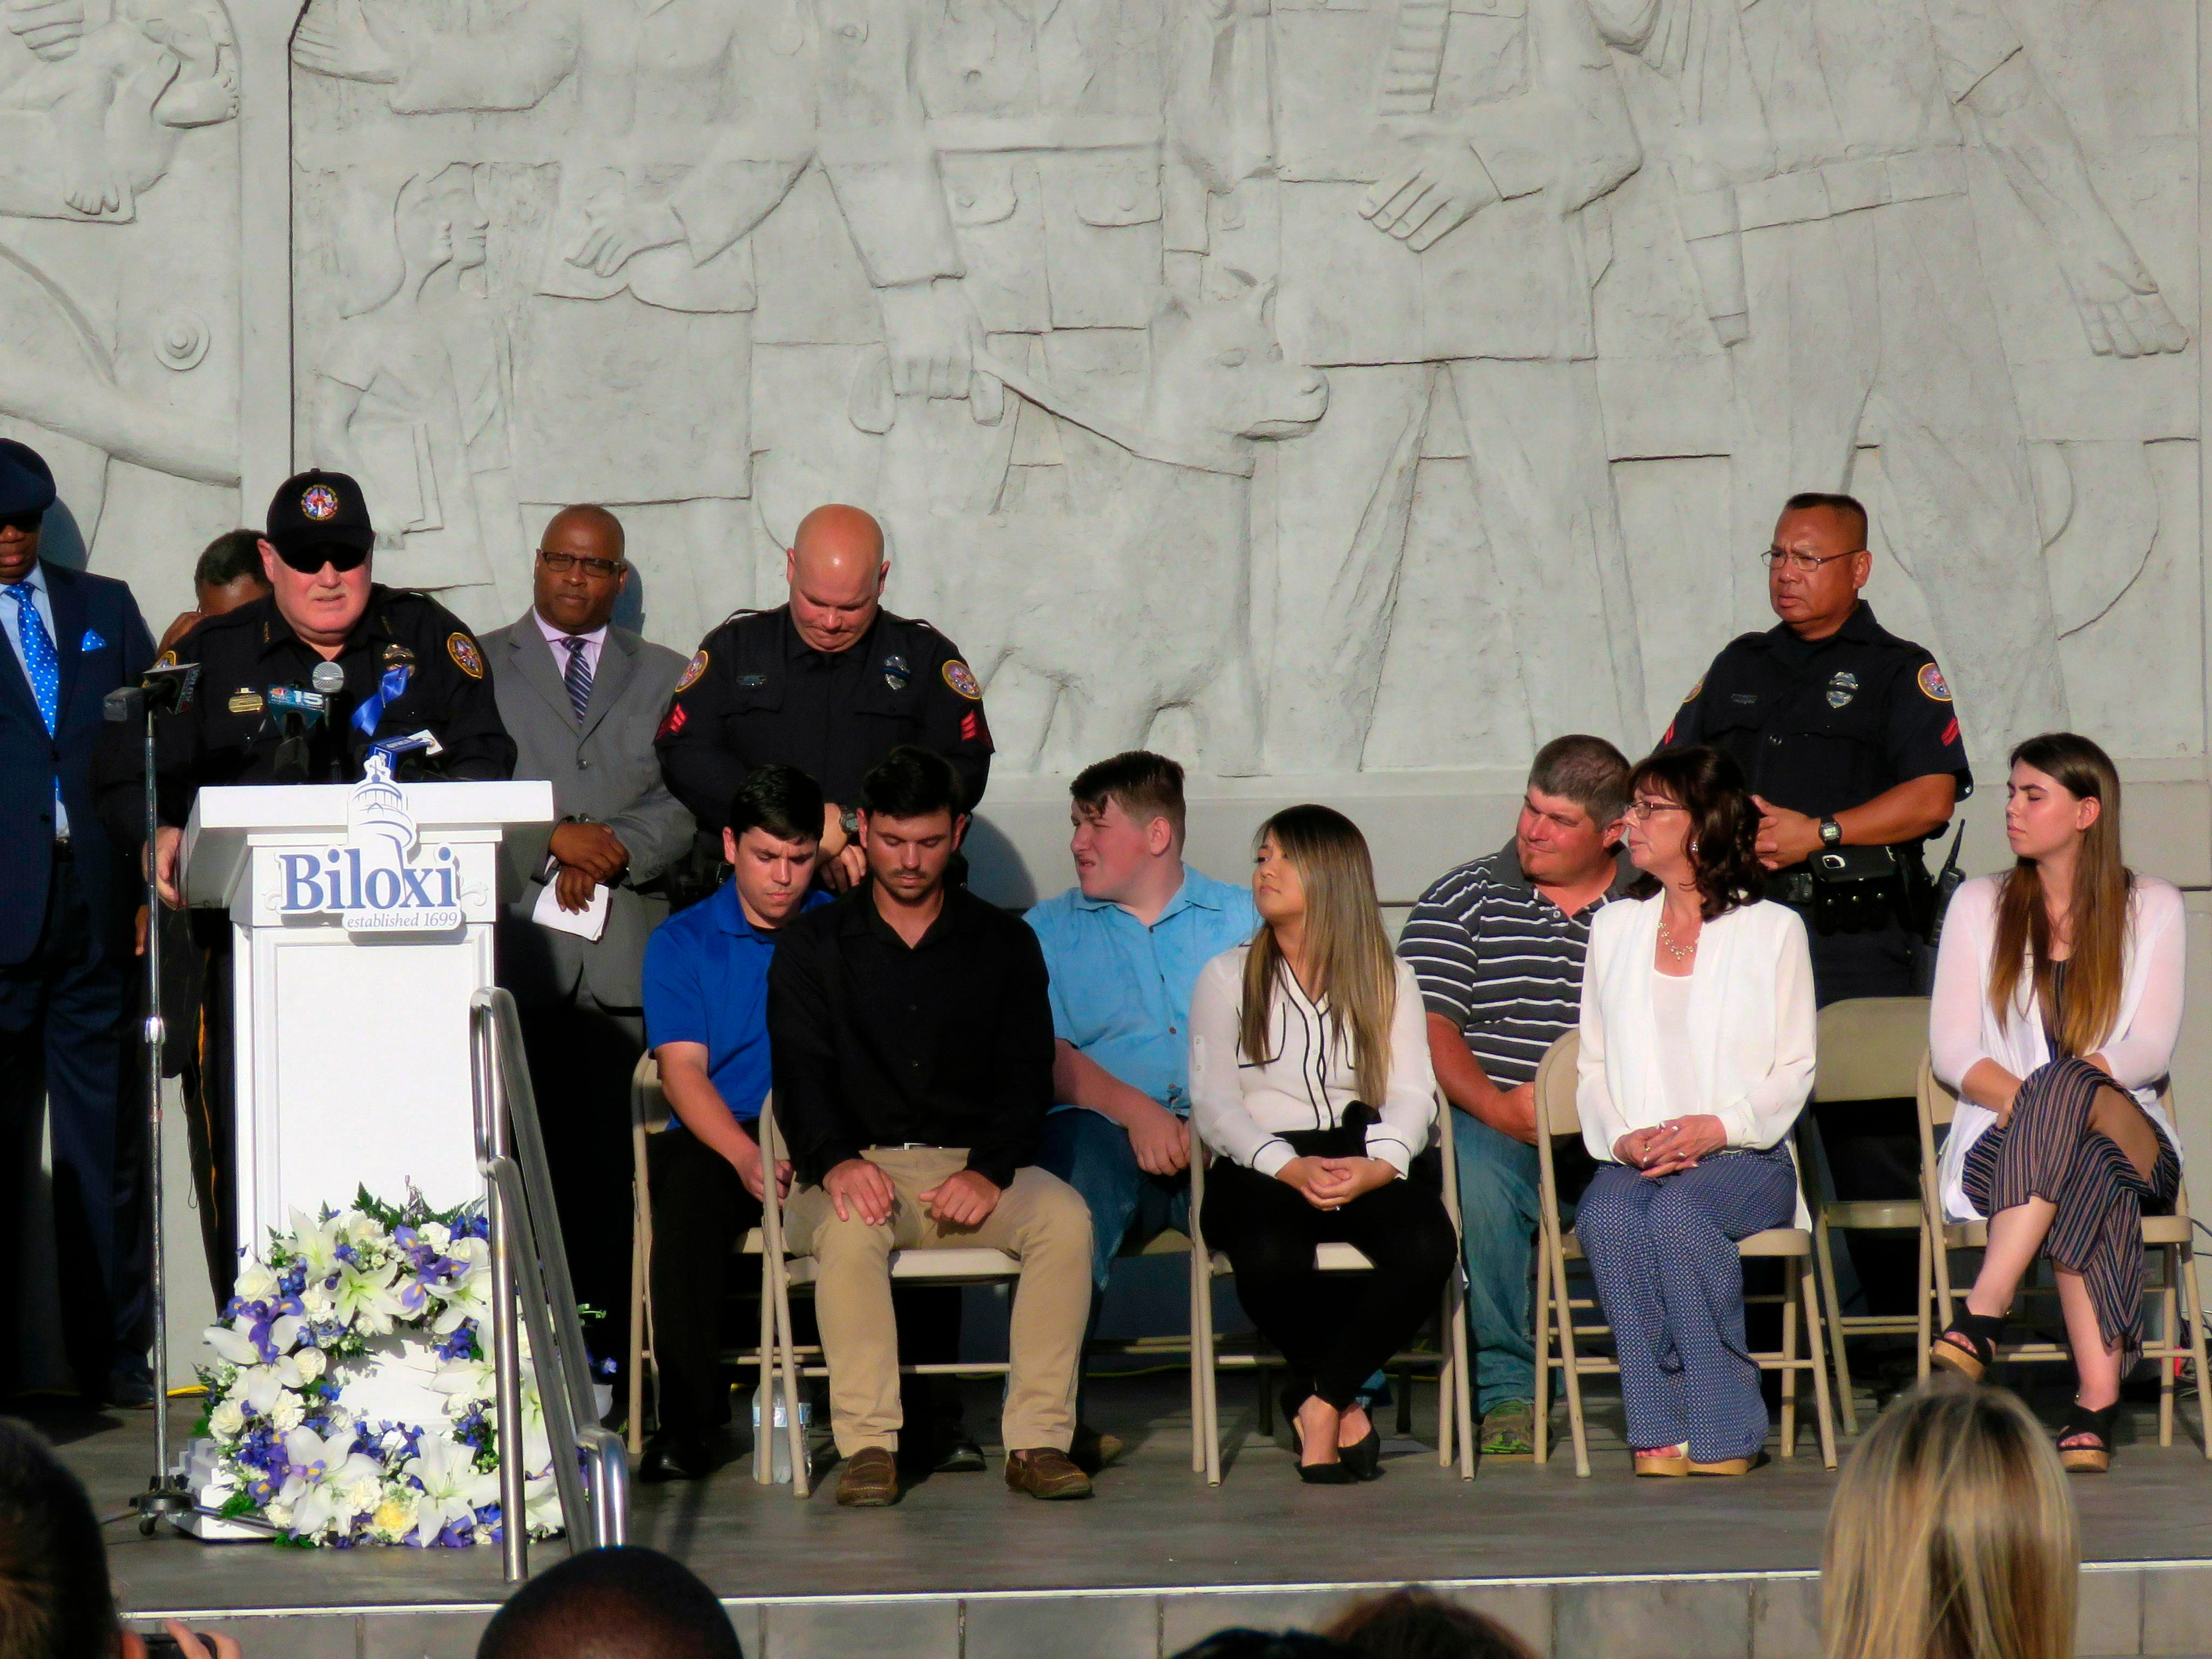 Biloxi Police Chief John Miller speaks during a memorial service for slain Patrolman Robert McKeithen while McKeithen's family listens outside the Biloxi Public Safety Center Tuesday, May 7, 2019, in Biloxi, Miss. People gathered Tuesday outside the police station, steps away from where Patrolman McKeithen was gunned down Sunday night in the parking lot.